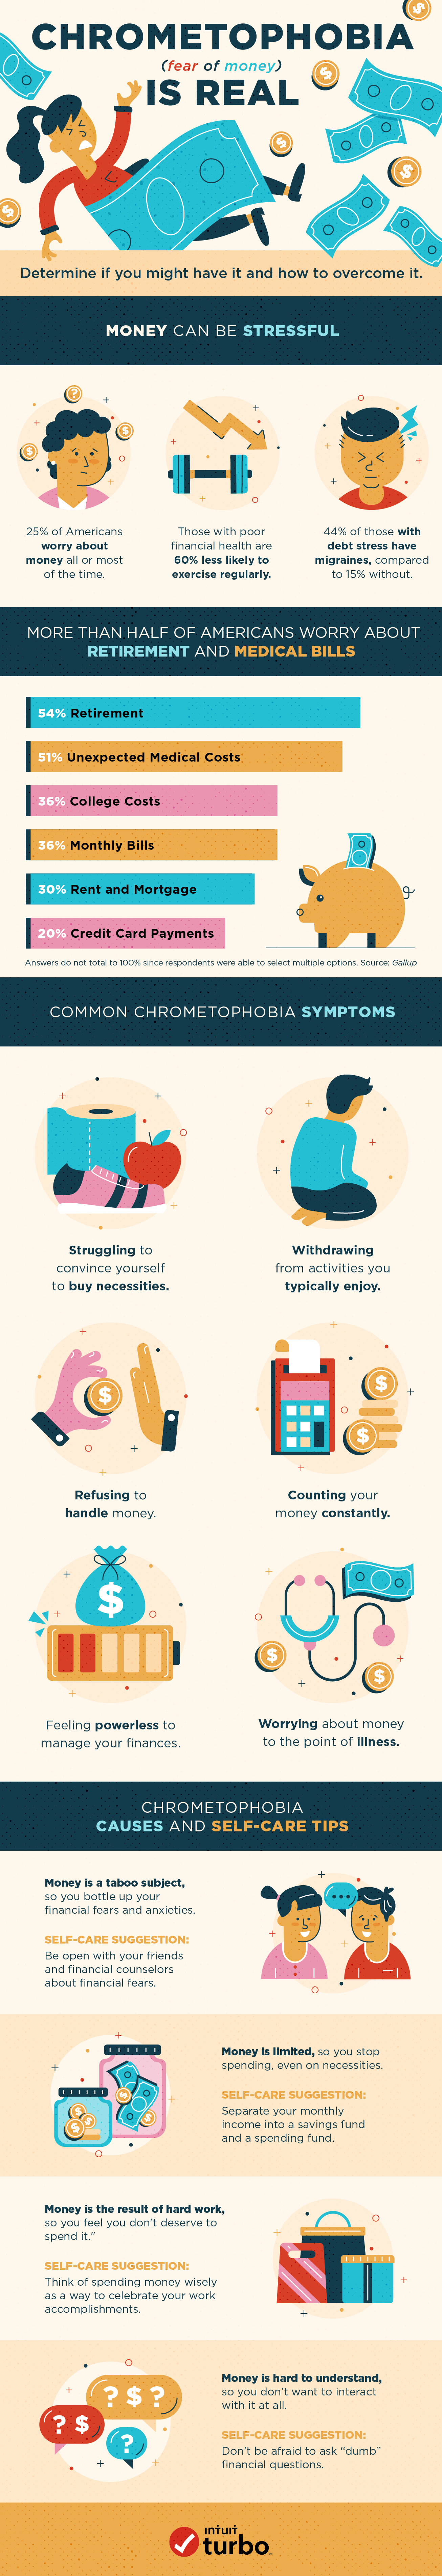 This infographic explains what chrometophobia (fear of money) is.